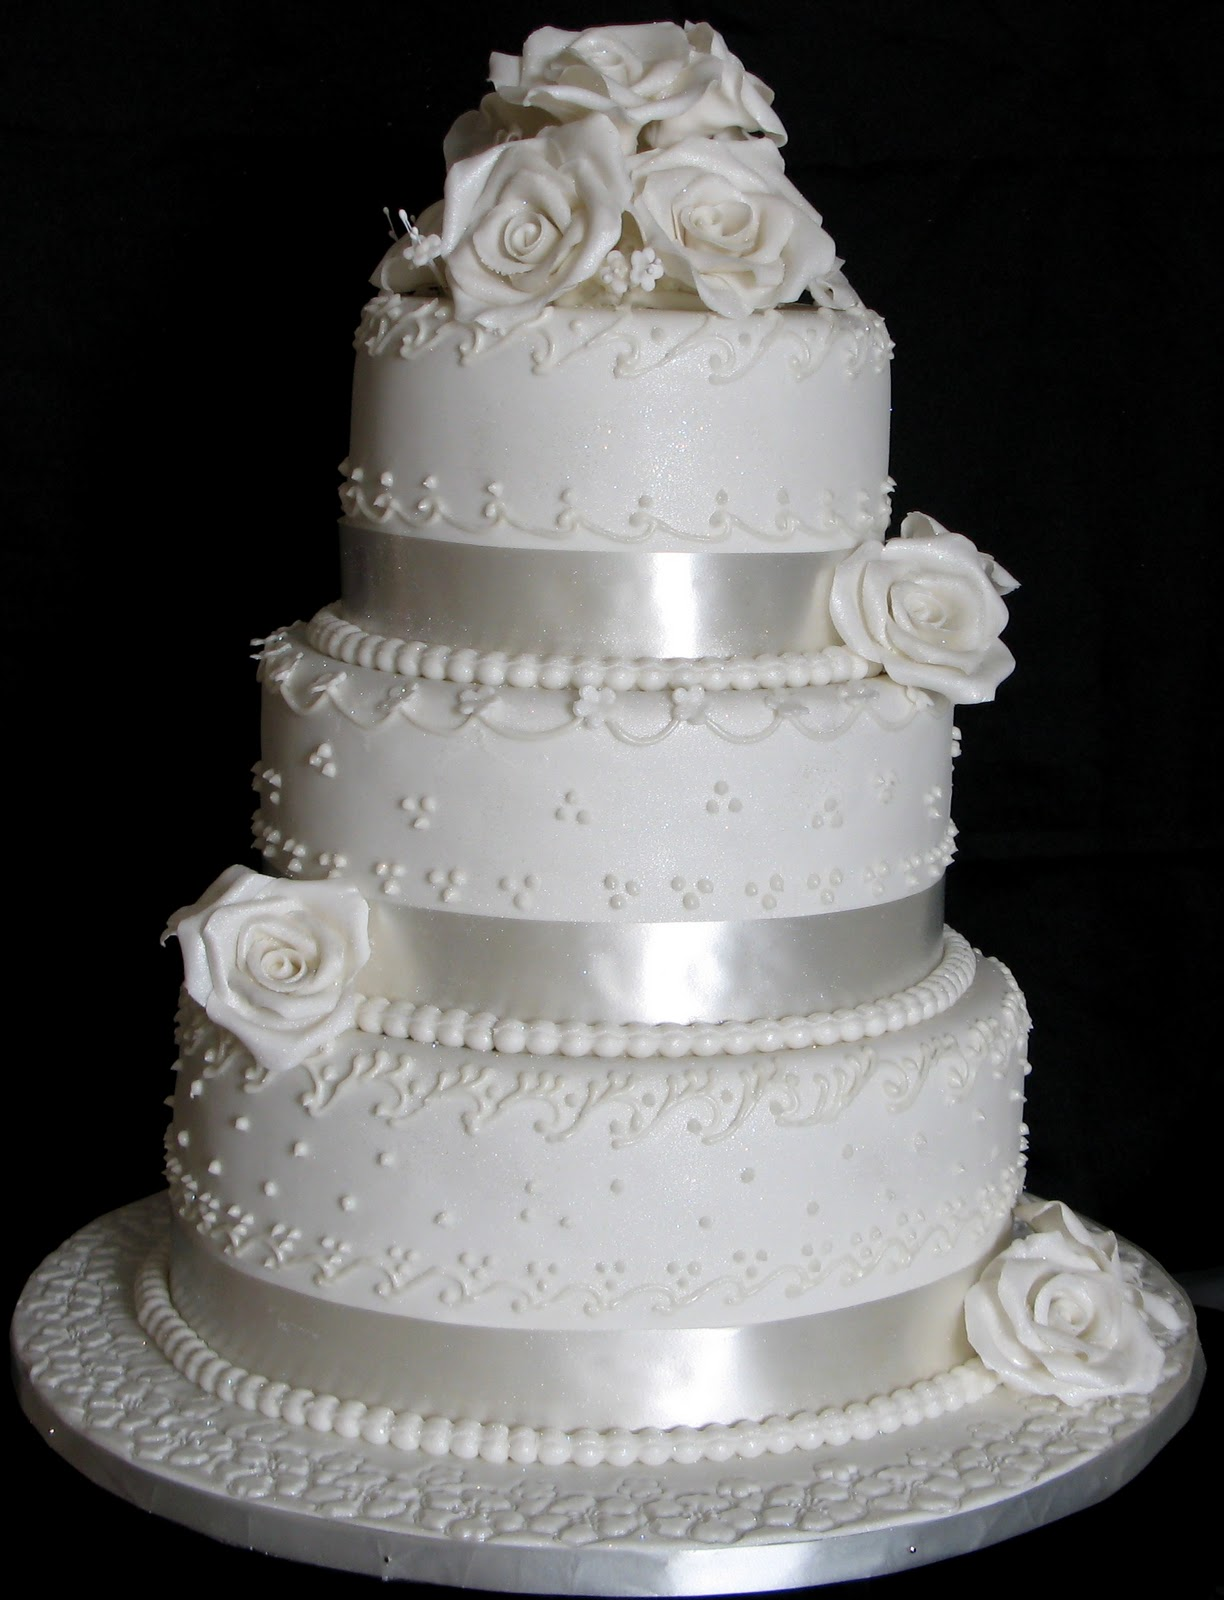 3 Layer Wedding Cakes Pink And White Wedding Cake Very Pretty 3